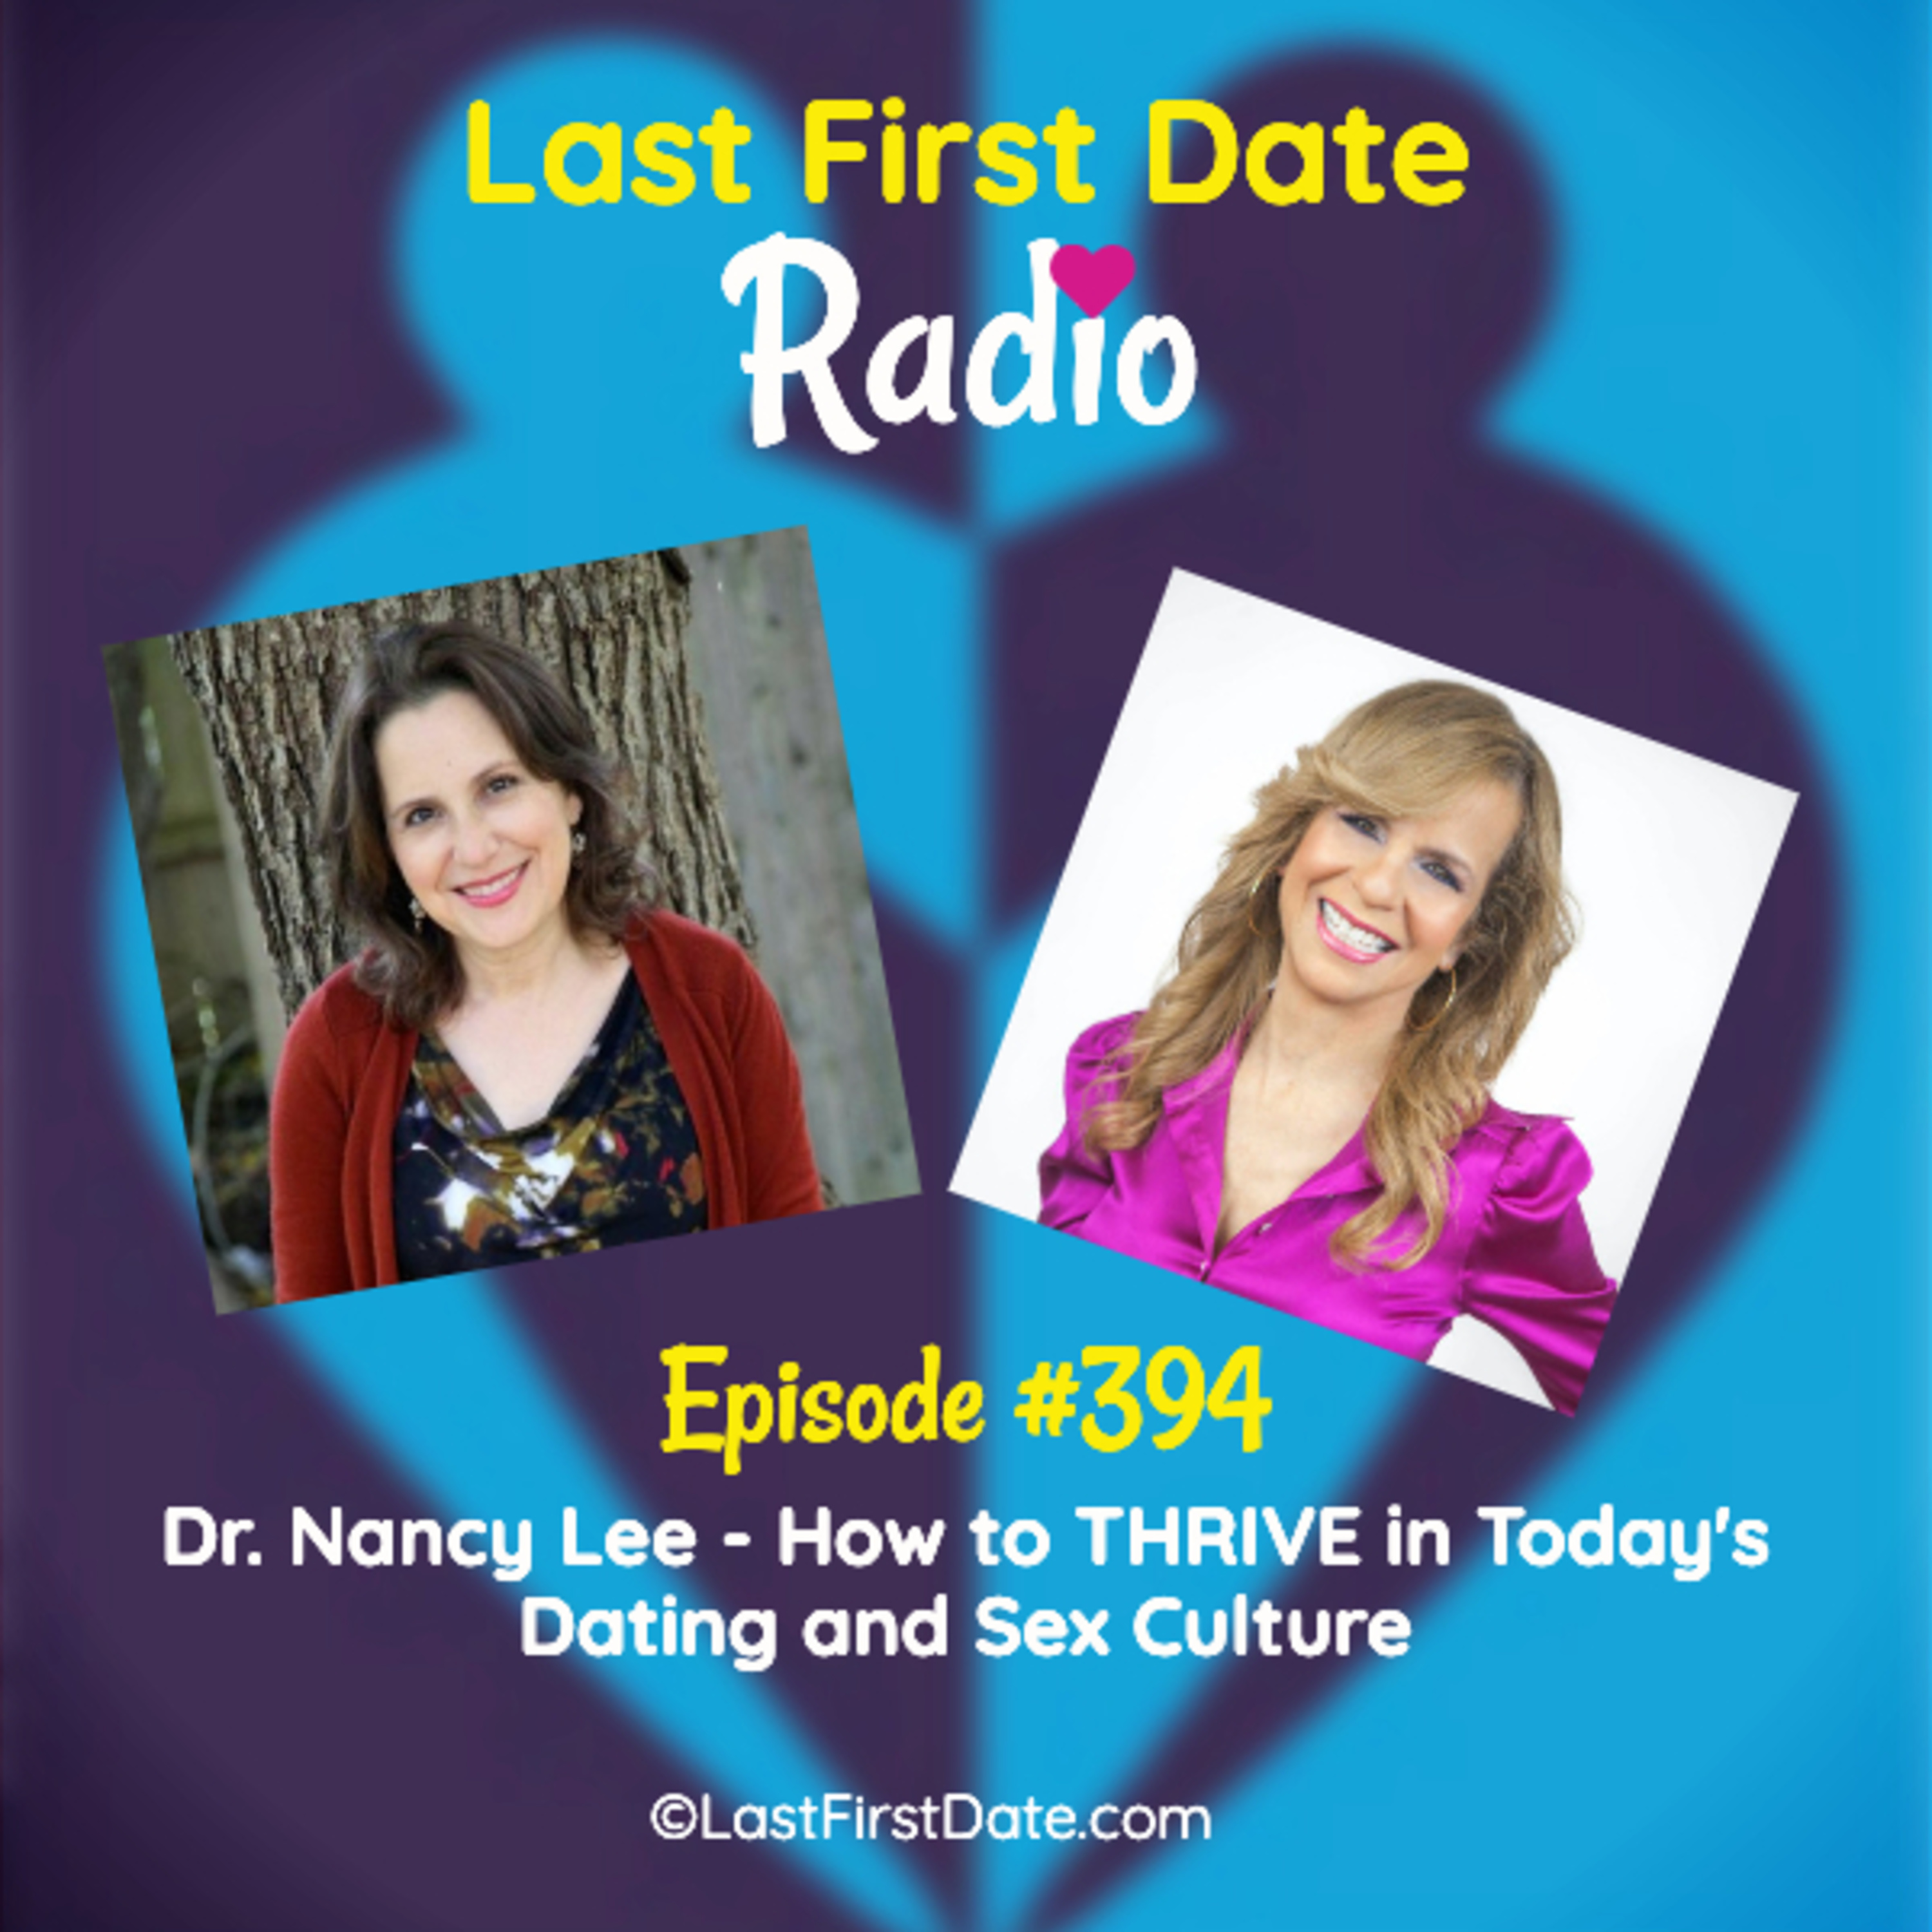 Last First Date Radio - EP 394: Dr. Nancy Lee - How to THRIVE in Today's Dating and Sex Culture